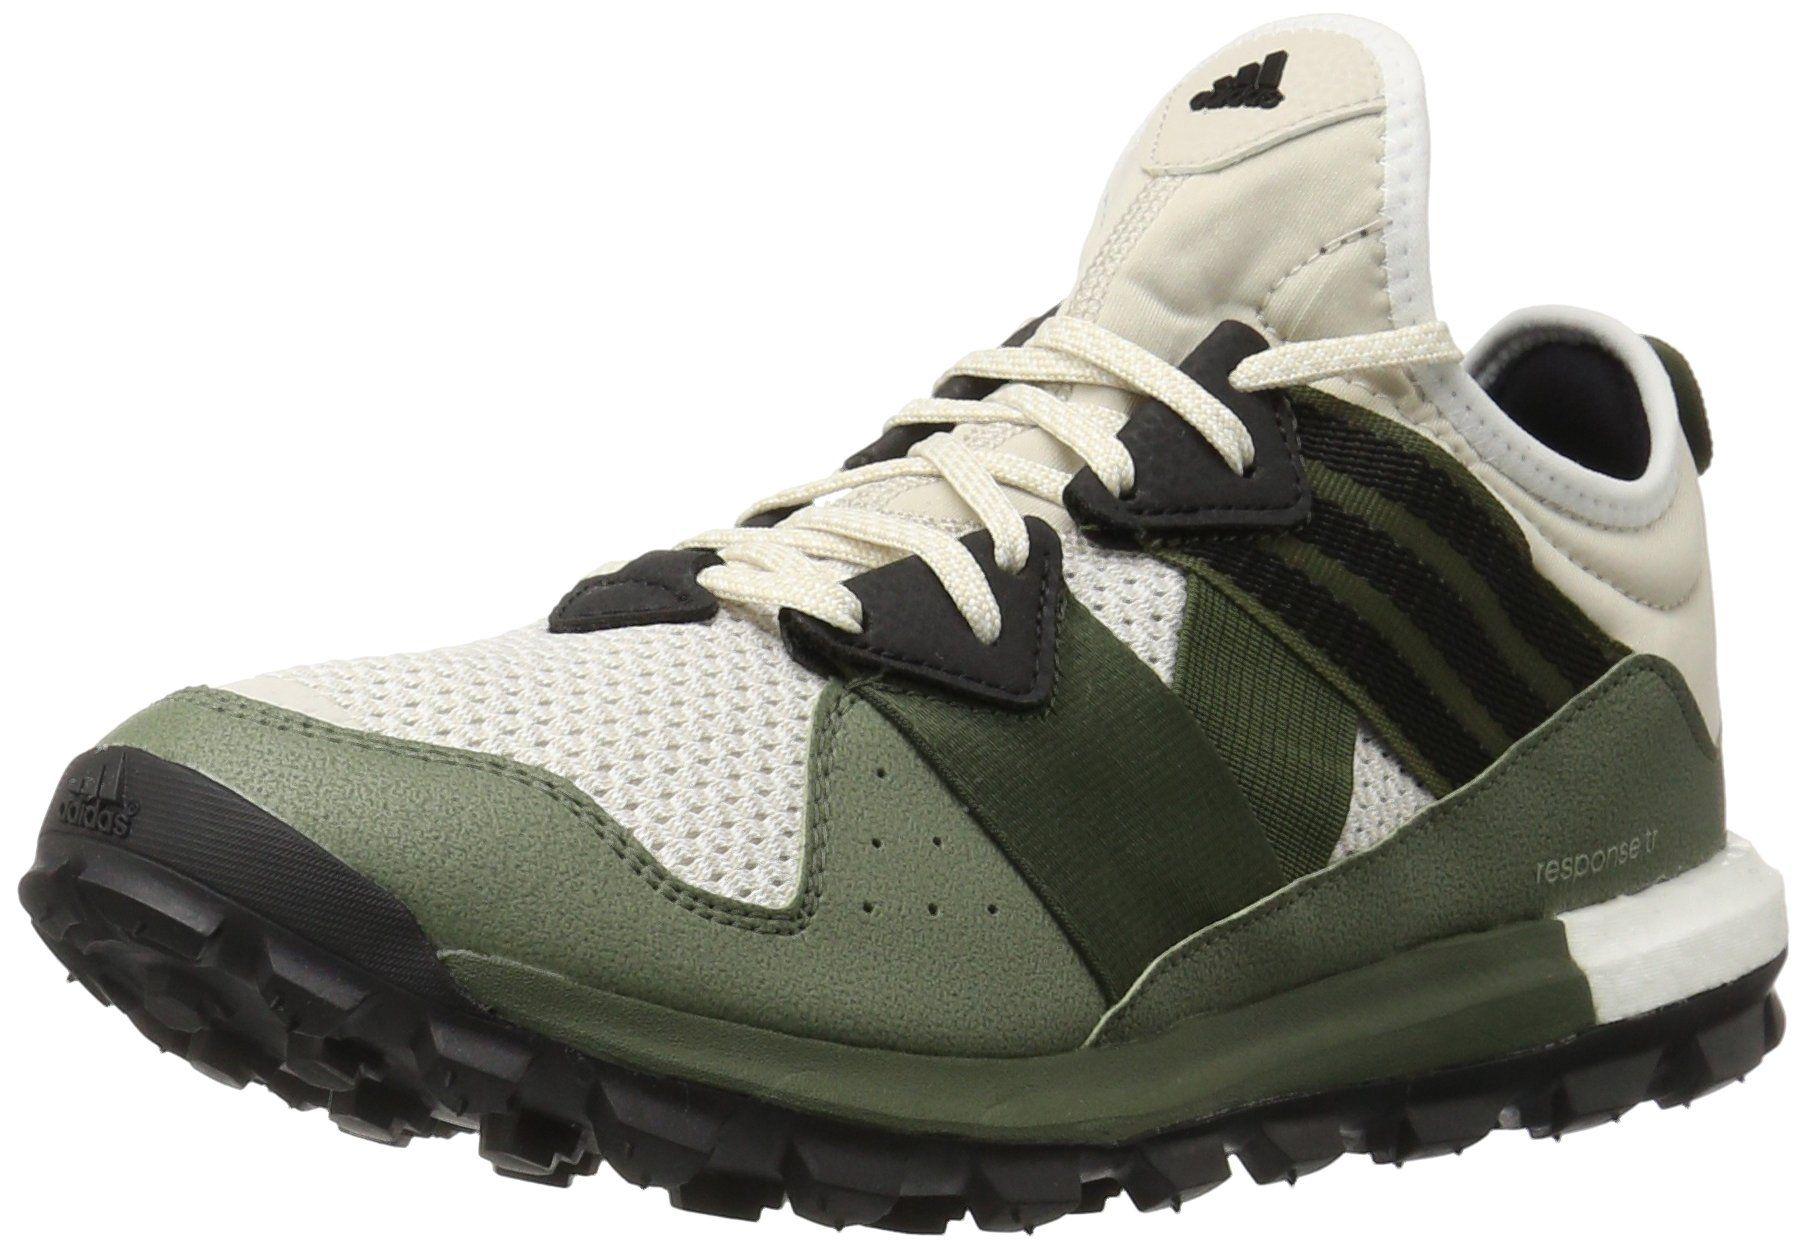 Adidas Performance Maschile Risposta Tr Trail Runner, Brown / Ferro